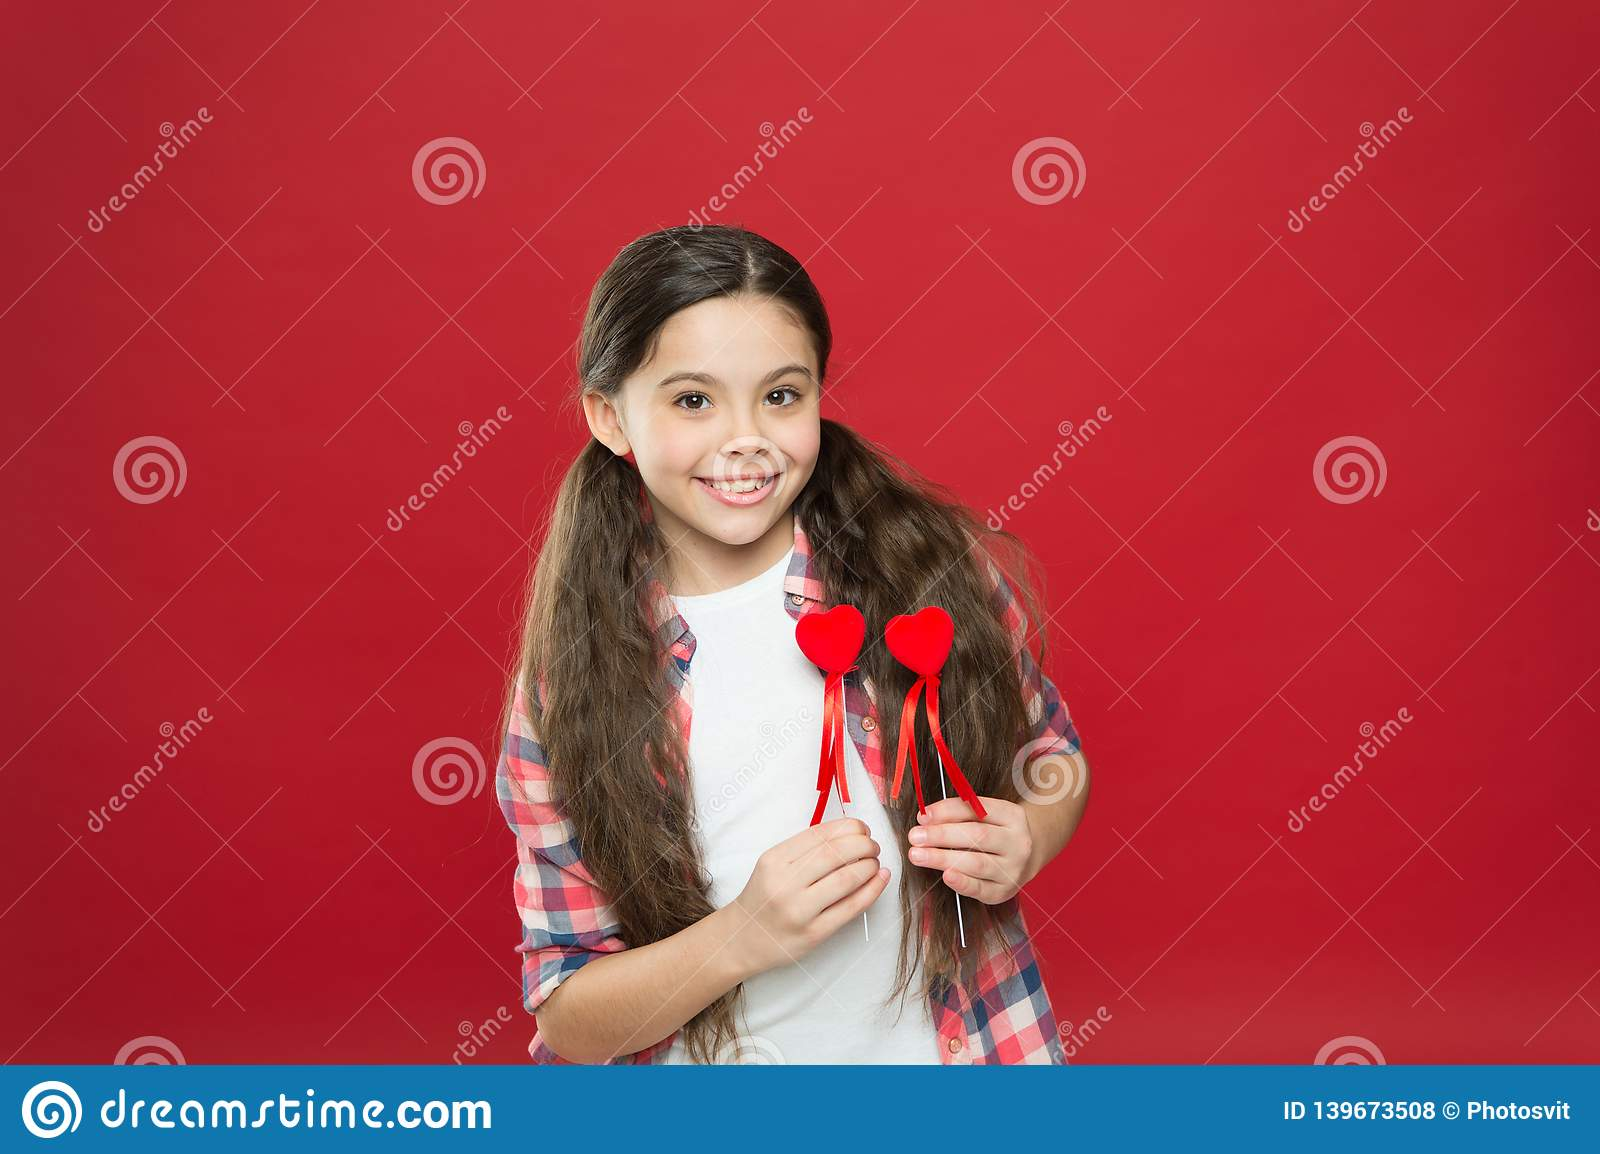 My love for you is forever. Small girl holding hearts on sticks. Cute girl with small red hearts. Small child with heart